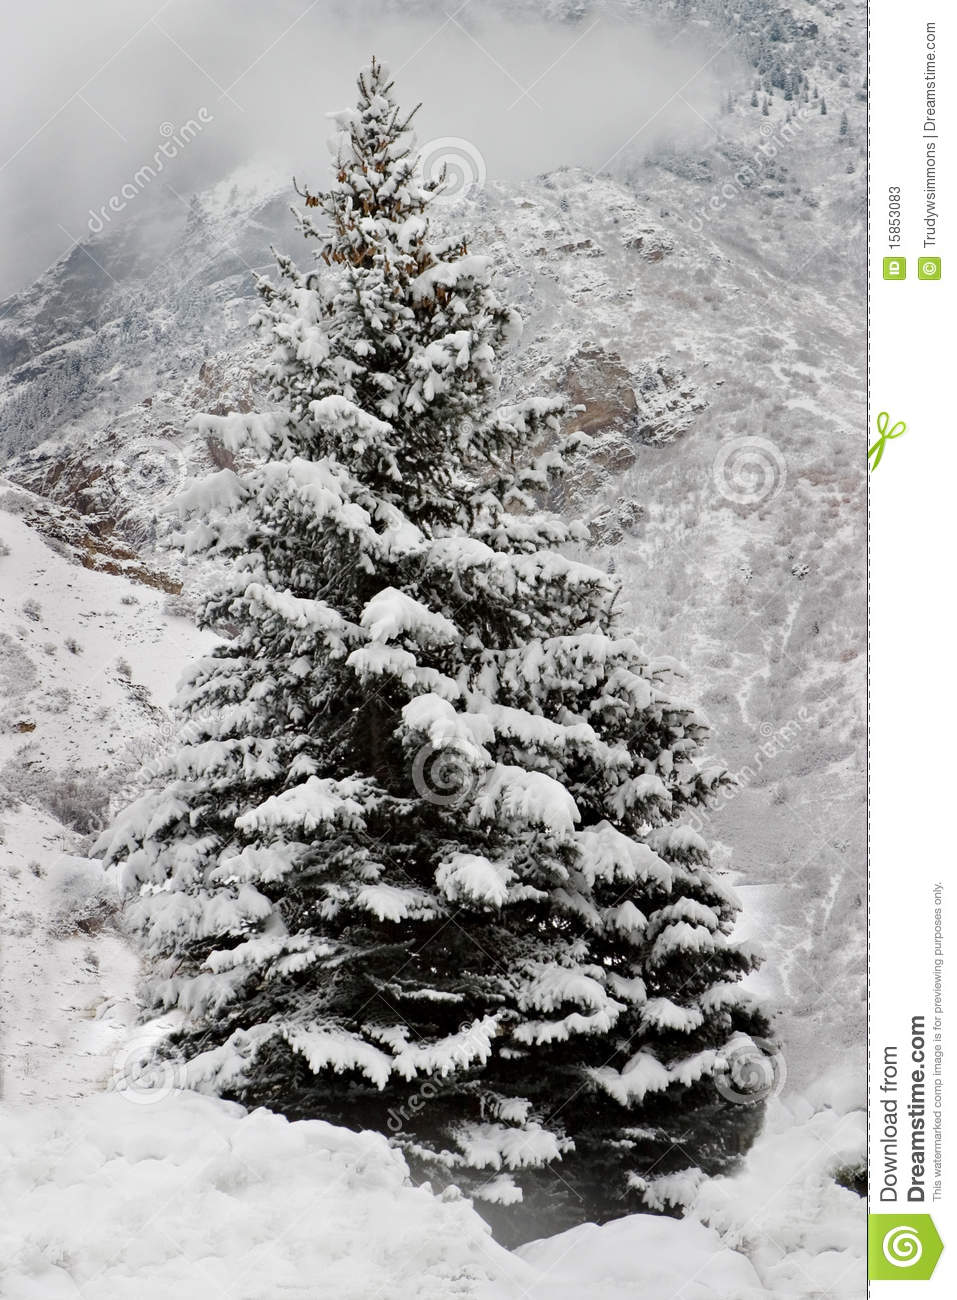 a snow covered pine tree in the mountains stock image image of